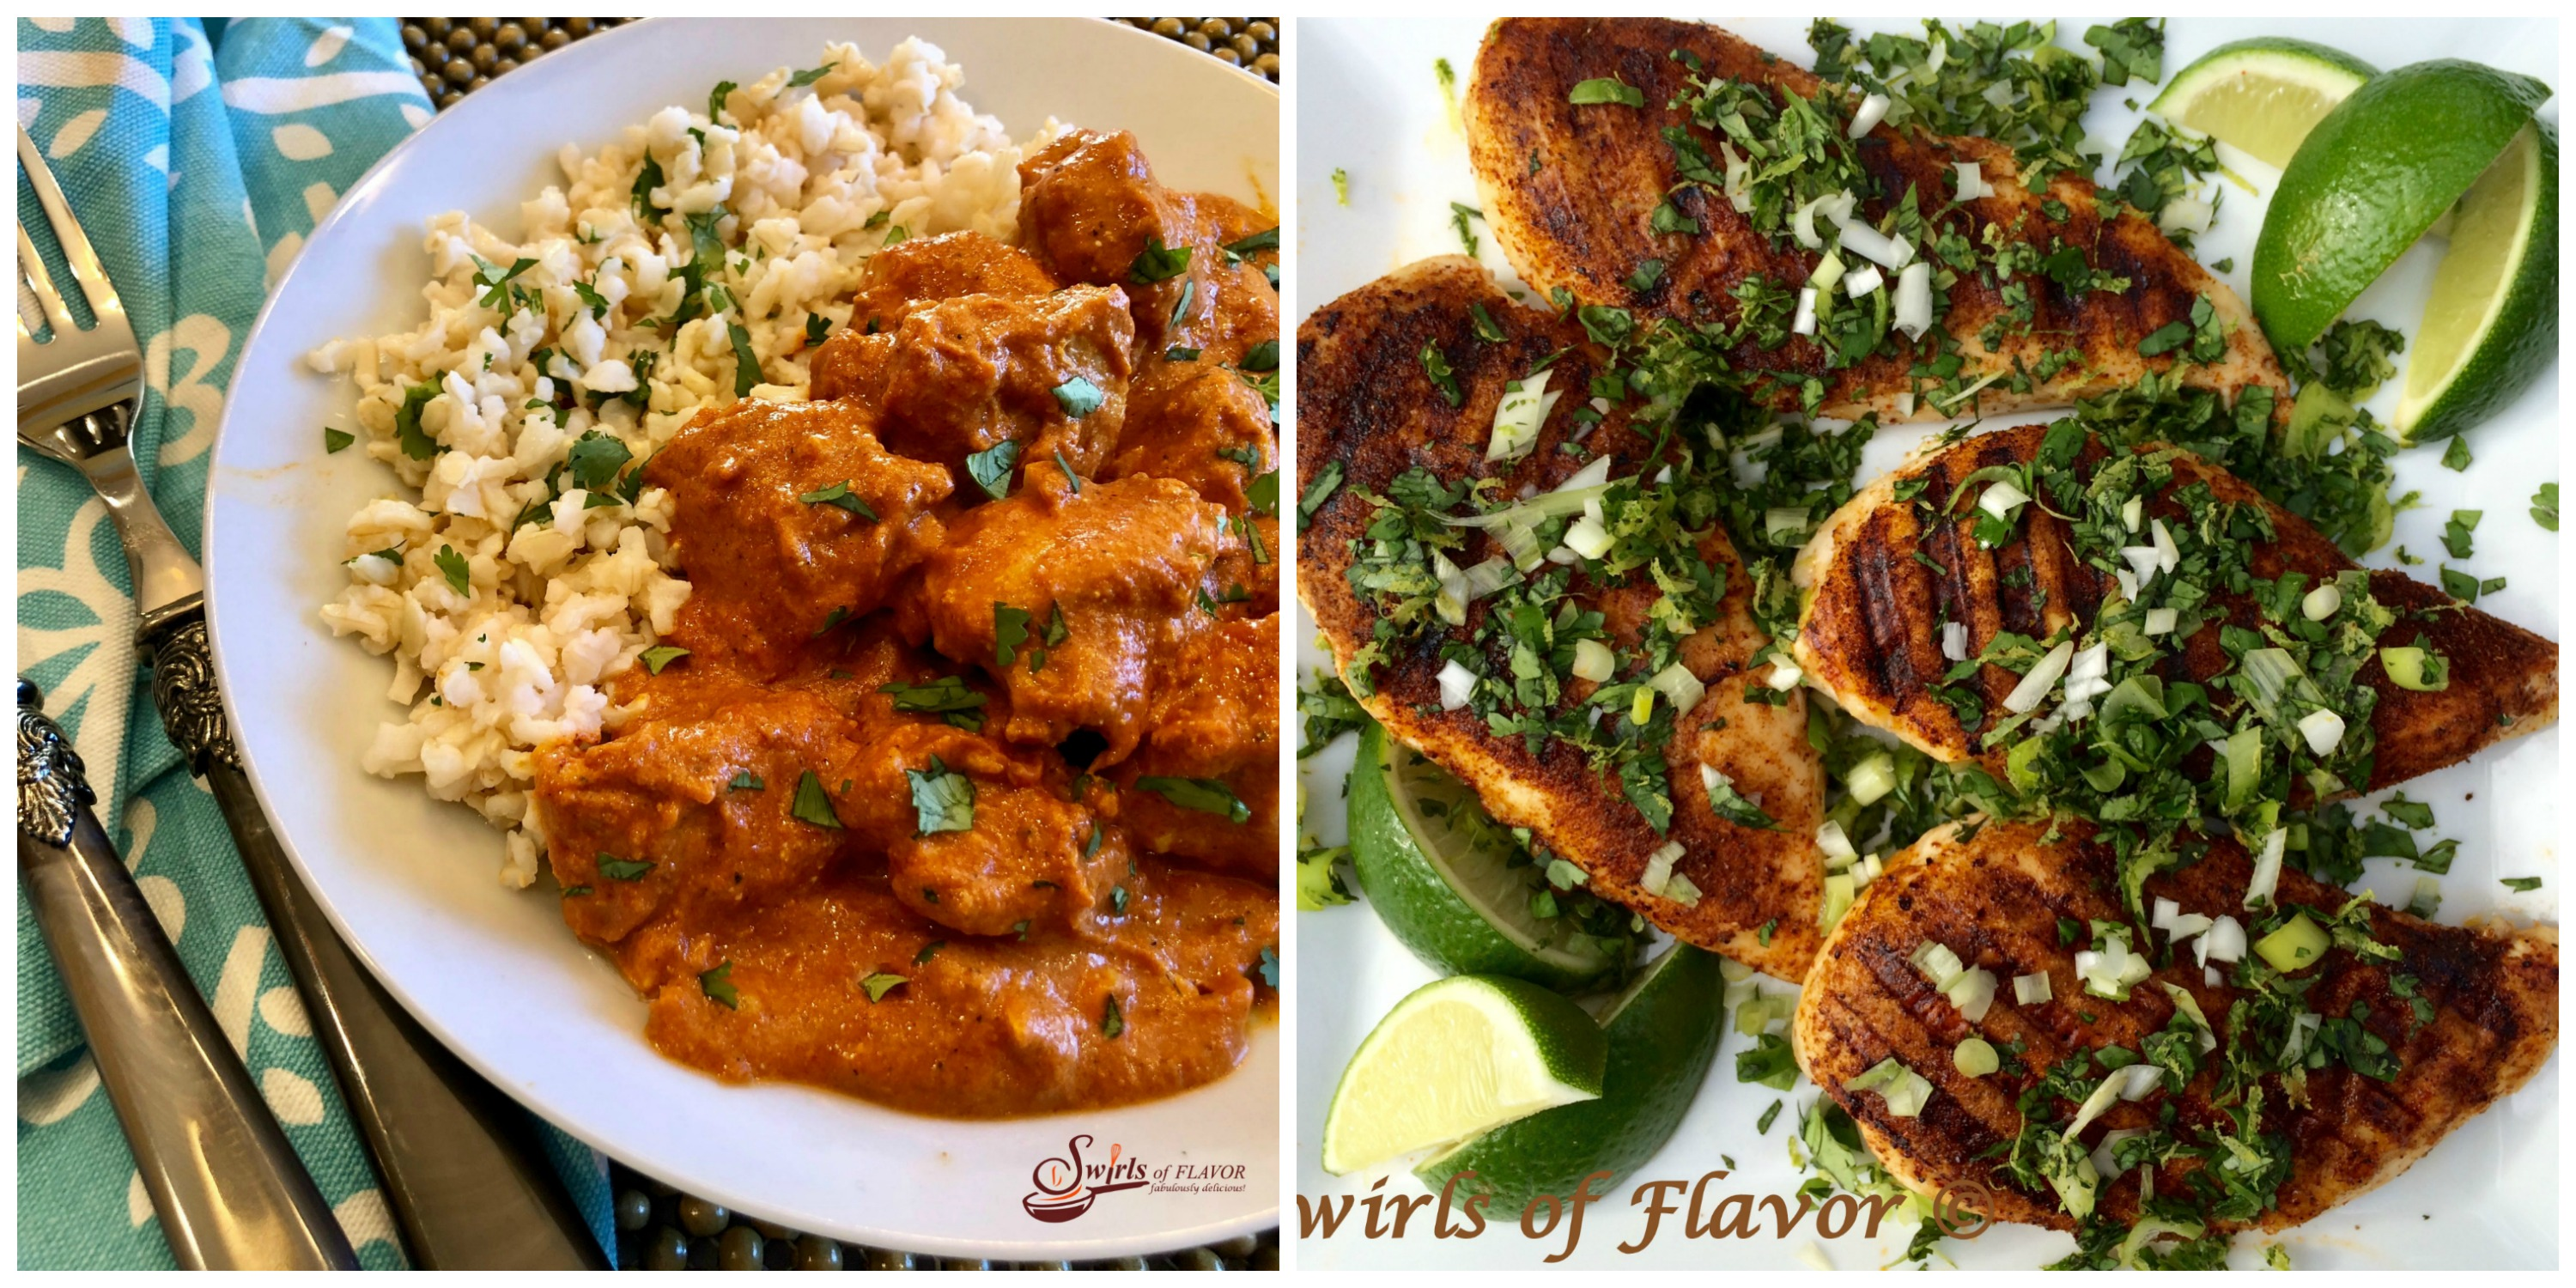 Butter Chicken and Chili Spiced Chicken